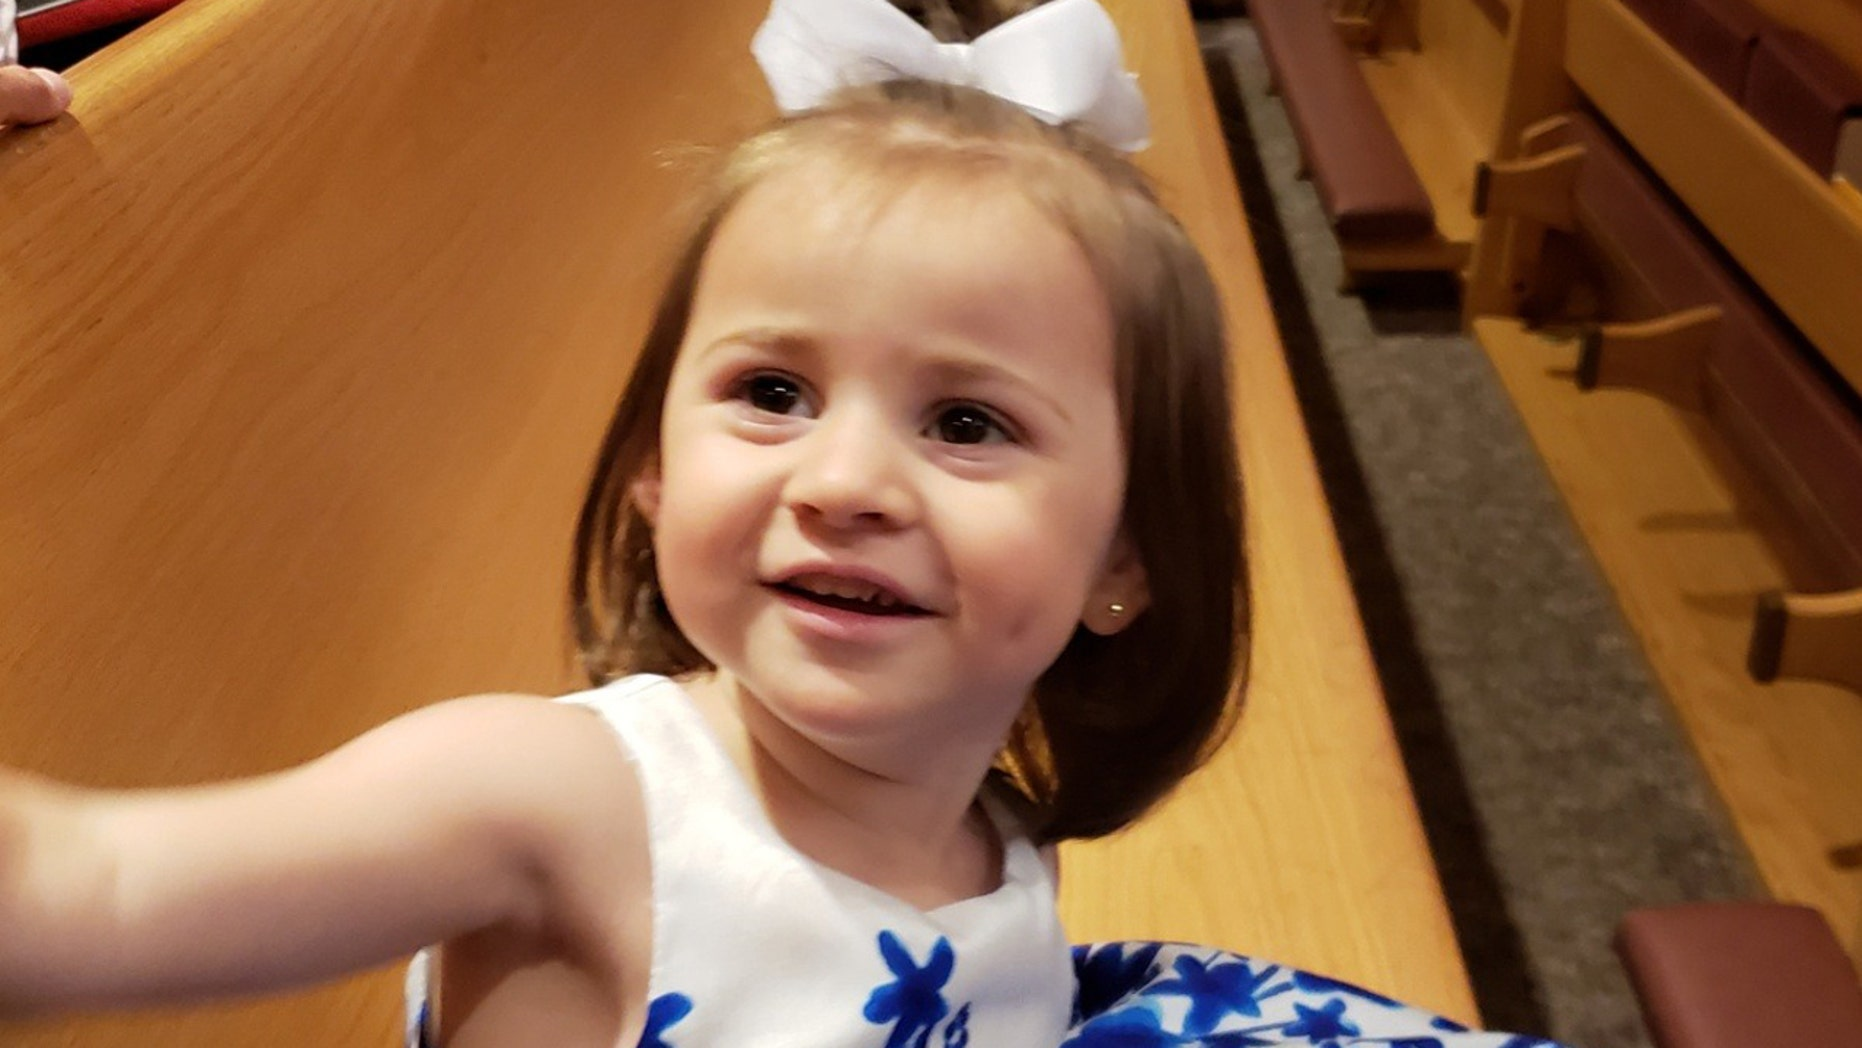 Felicity Karam, 2, died after an ice cream truck hit her on Sunday afternoon.